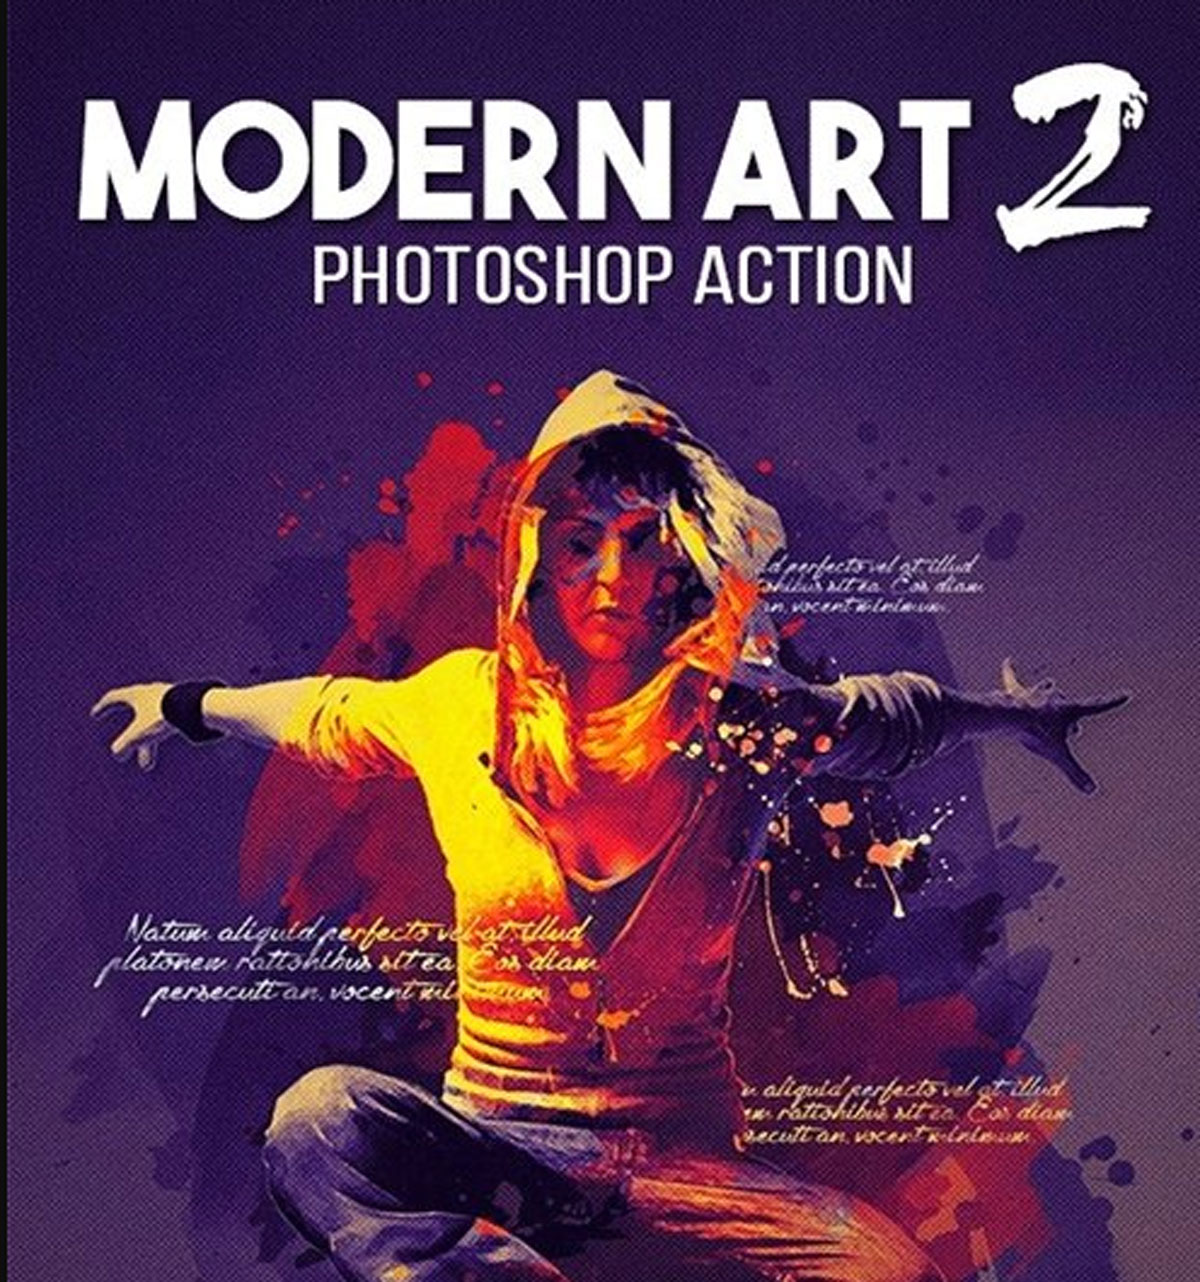 Modern Art 2 Photoshop Action 18205403